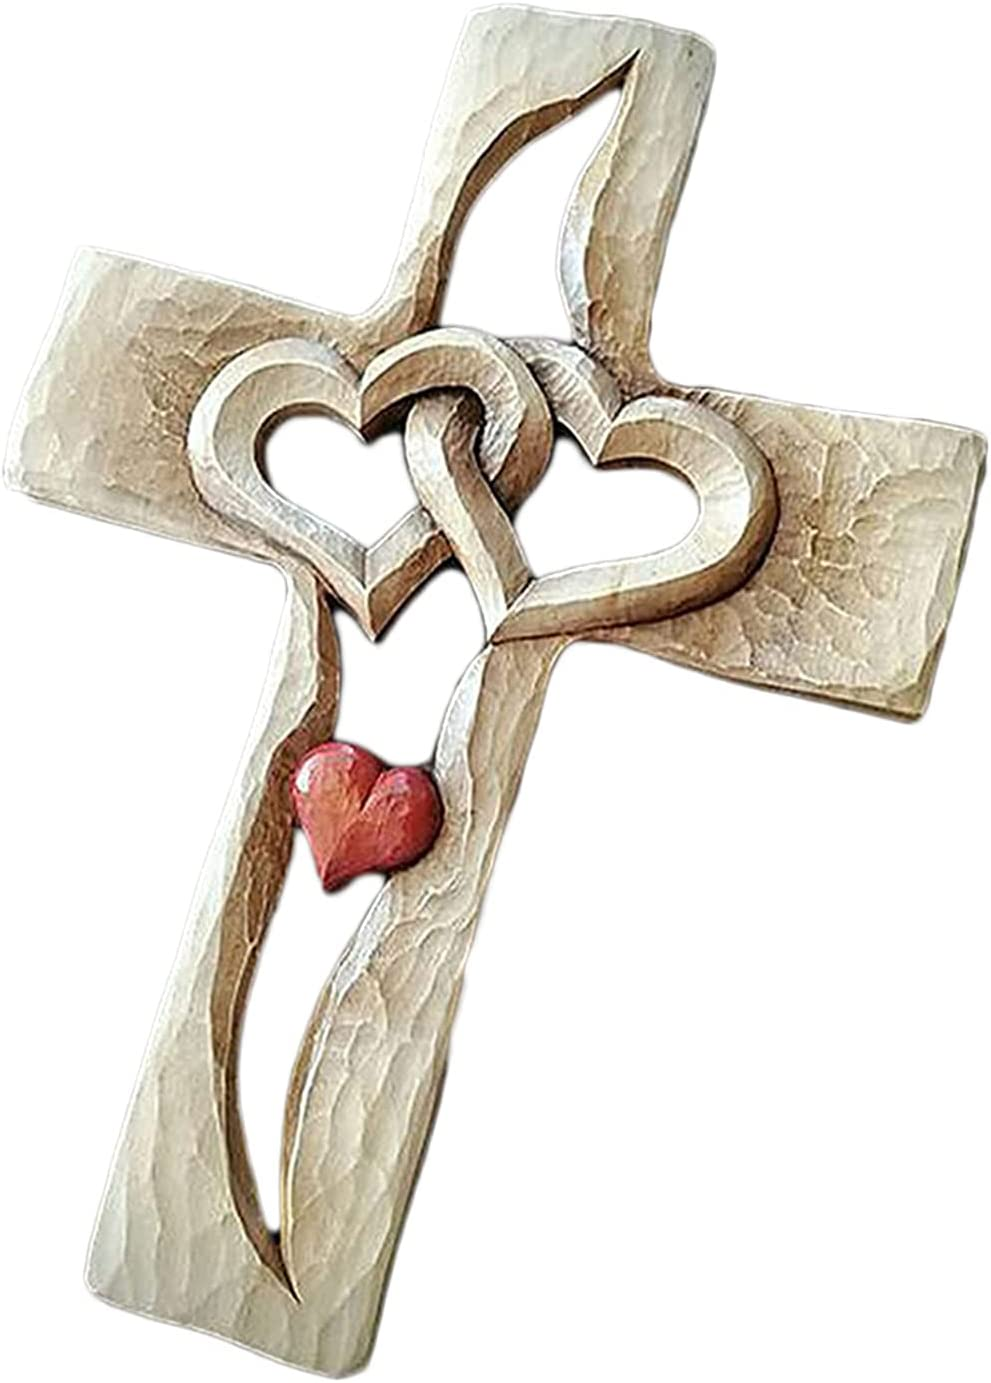 Carved Houston Mall Wooden Cross with Hollow Intertwined Hanging Gifts Love Hearts